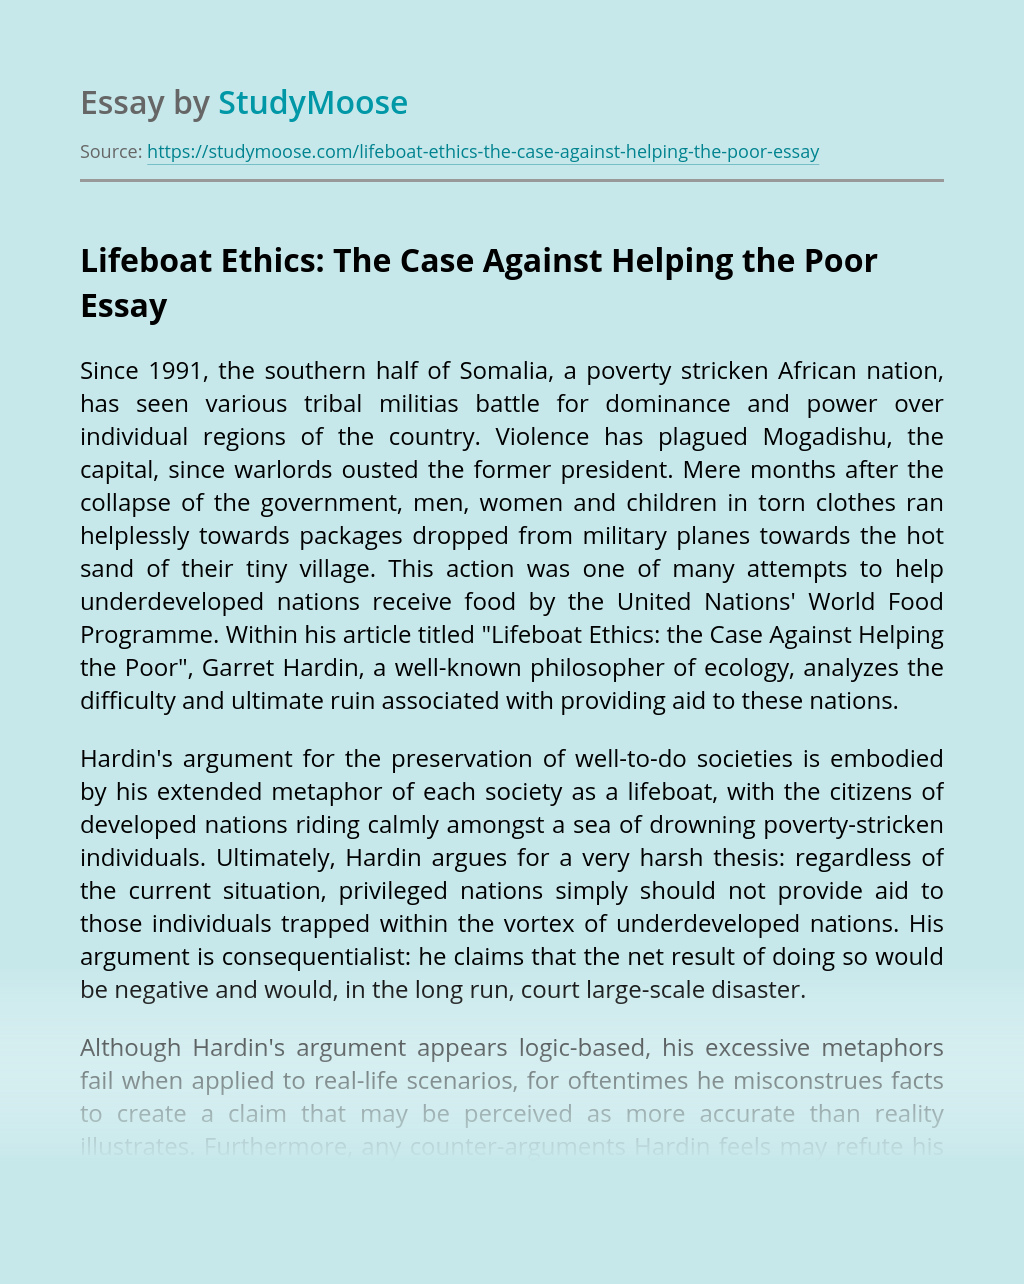 Lifeboat Ethics: The Case Against Helping the Poor